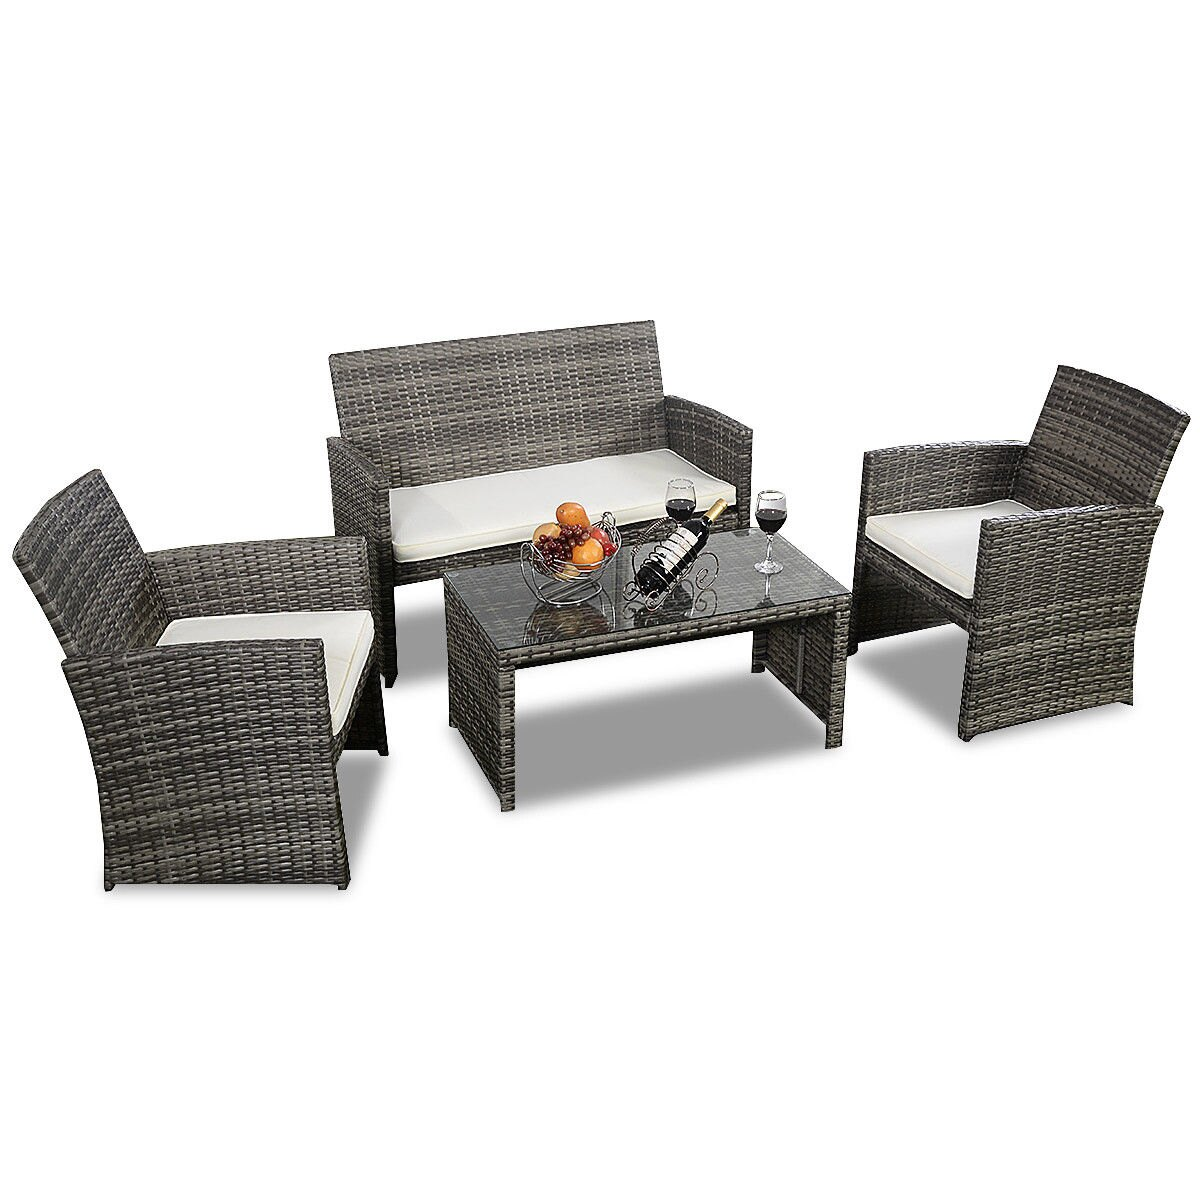 Costway 4 Pc Rattan Patio Furniture Set Garden Lawn Sofa Cushioned Seat Mix Gray Wicker 2  sc 1 st  Rakuten.com & Costway: Costway 4 Pc Rattan Patio Furniture Set Garden Lawn Sofa ...